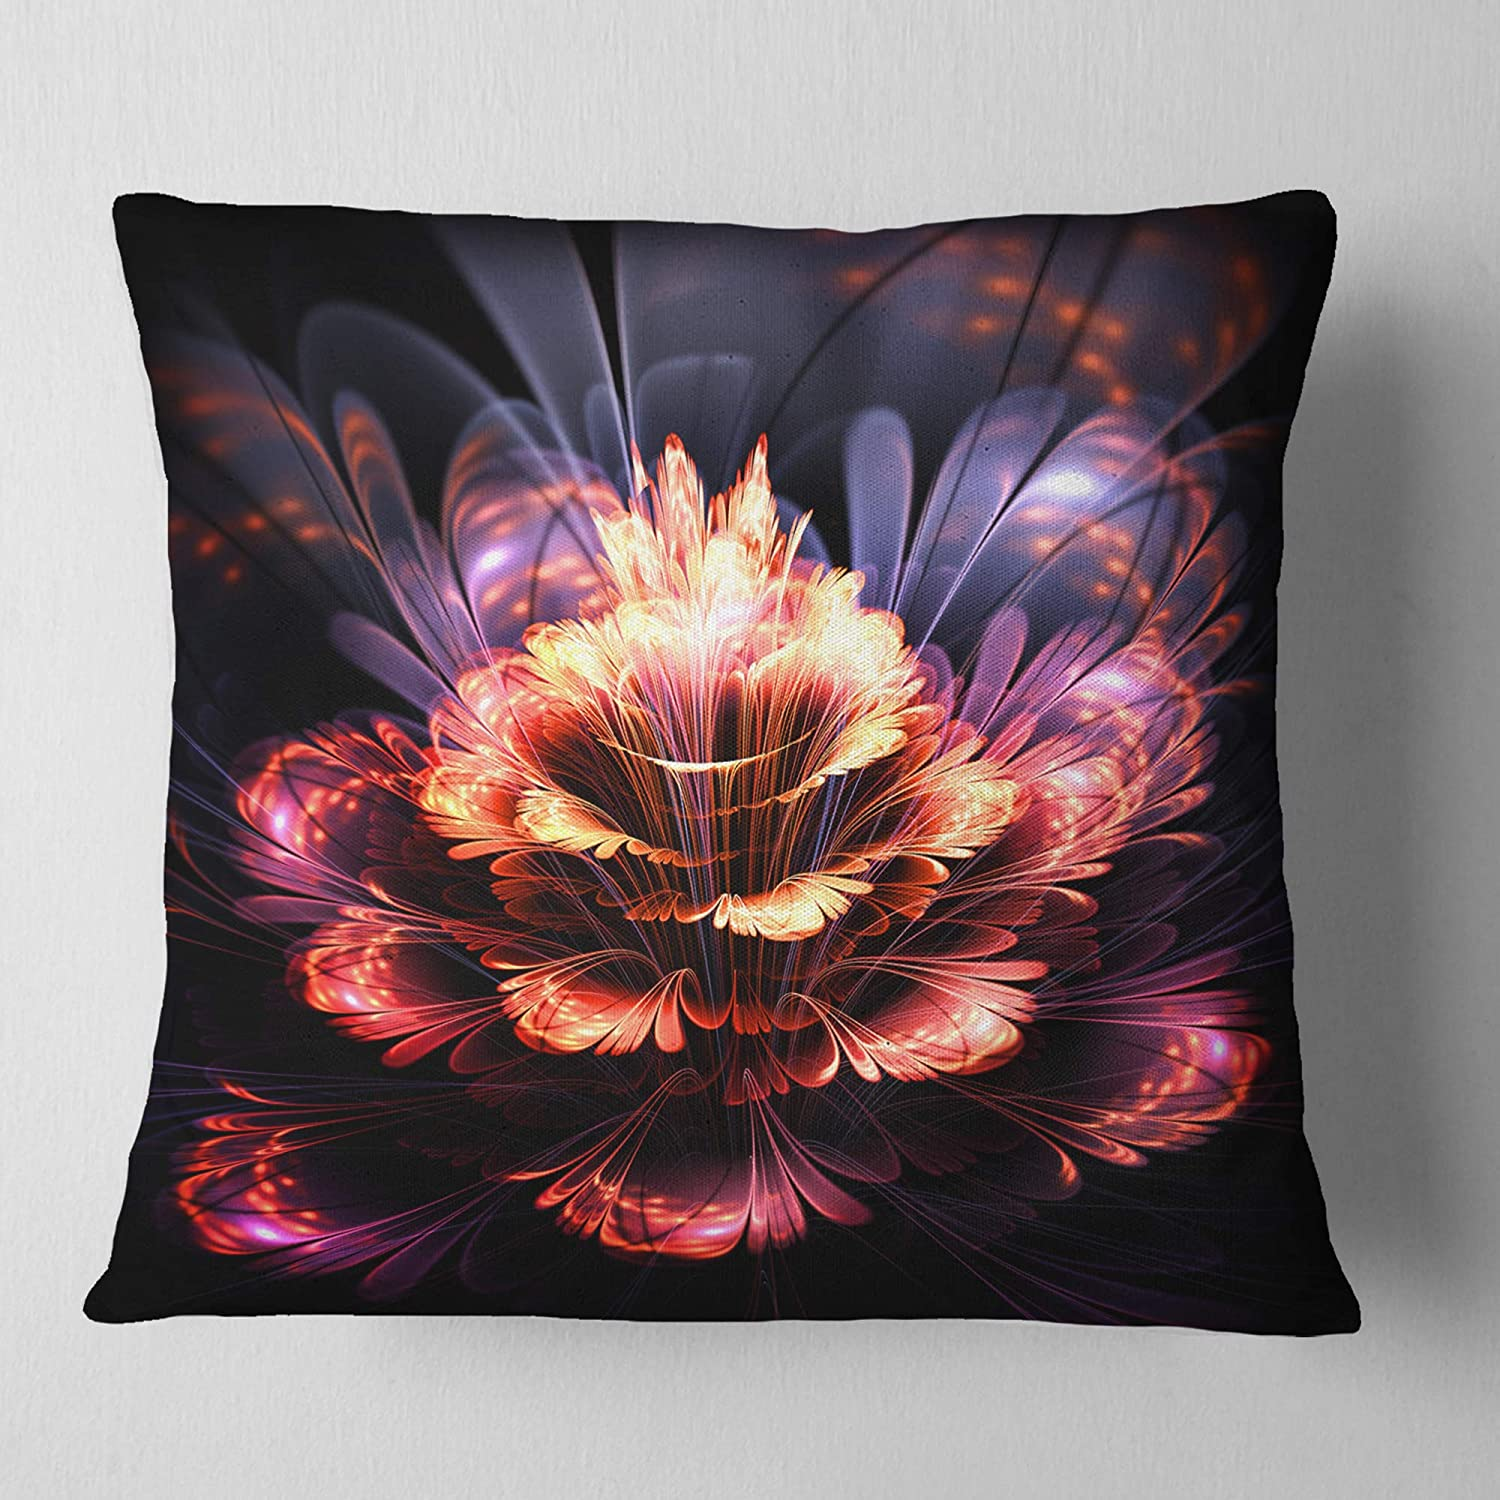 Sofa Throw Pillow 26 in Designart CU8897-26-26 Fractal Flower Orange and Purple Floral Cushion Cover for Living Room x 26 in in Insert Printed On Both Side